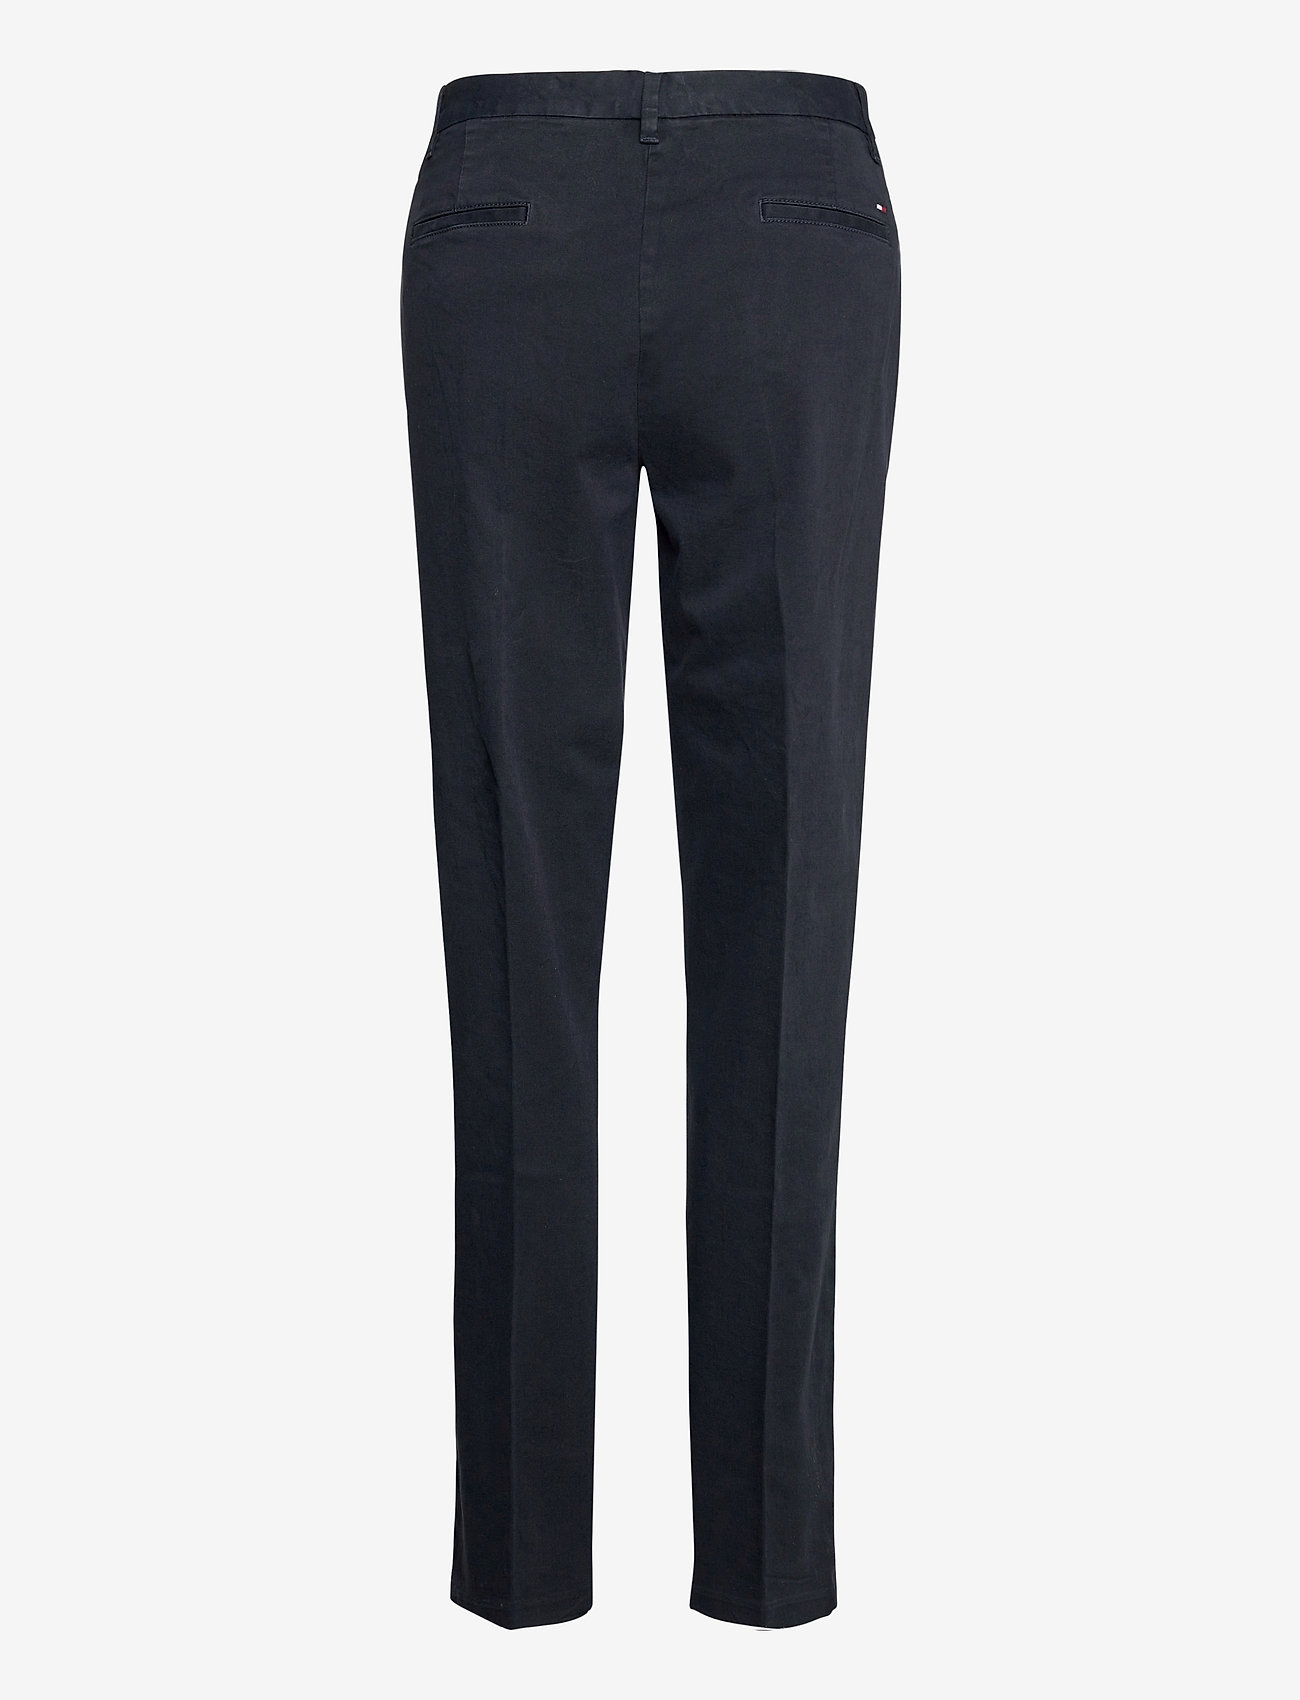 Tommy Hilfiger - HERITAGE SLIM FIT CHINO - chinos - midnight - 1